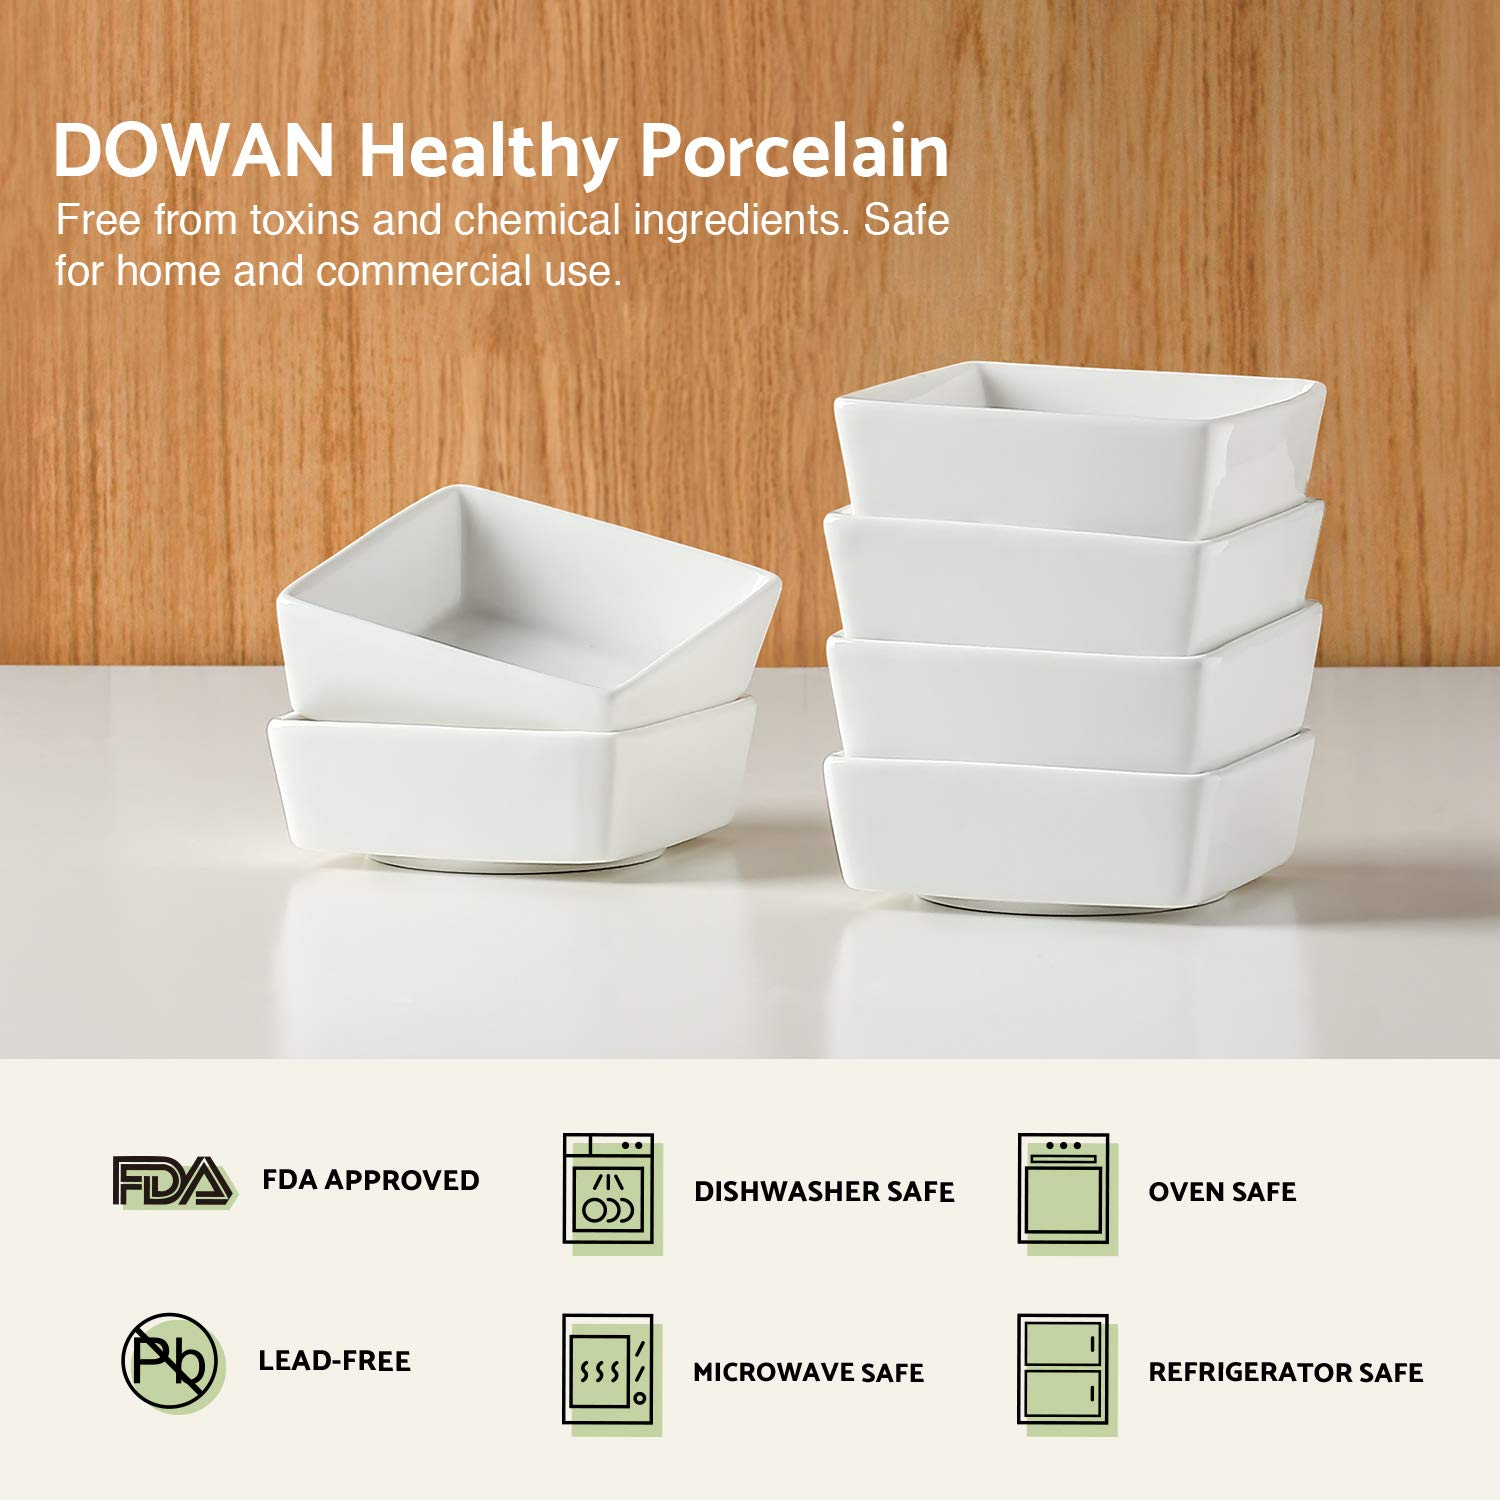 DOWAN 6oz Porcelain Ramekins - 6 Packs, White by DOWAN (Image #6)